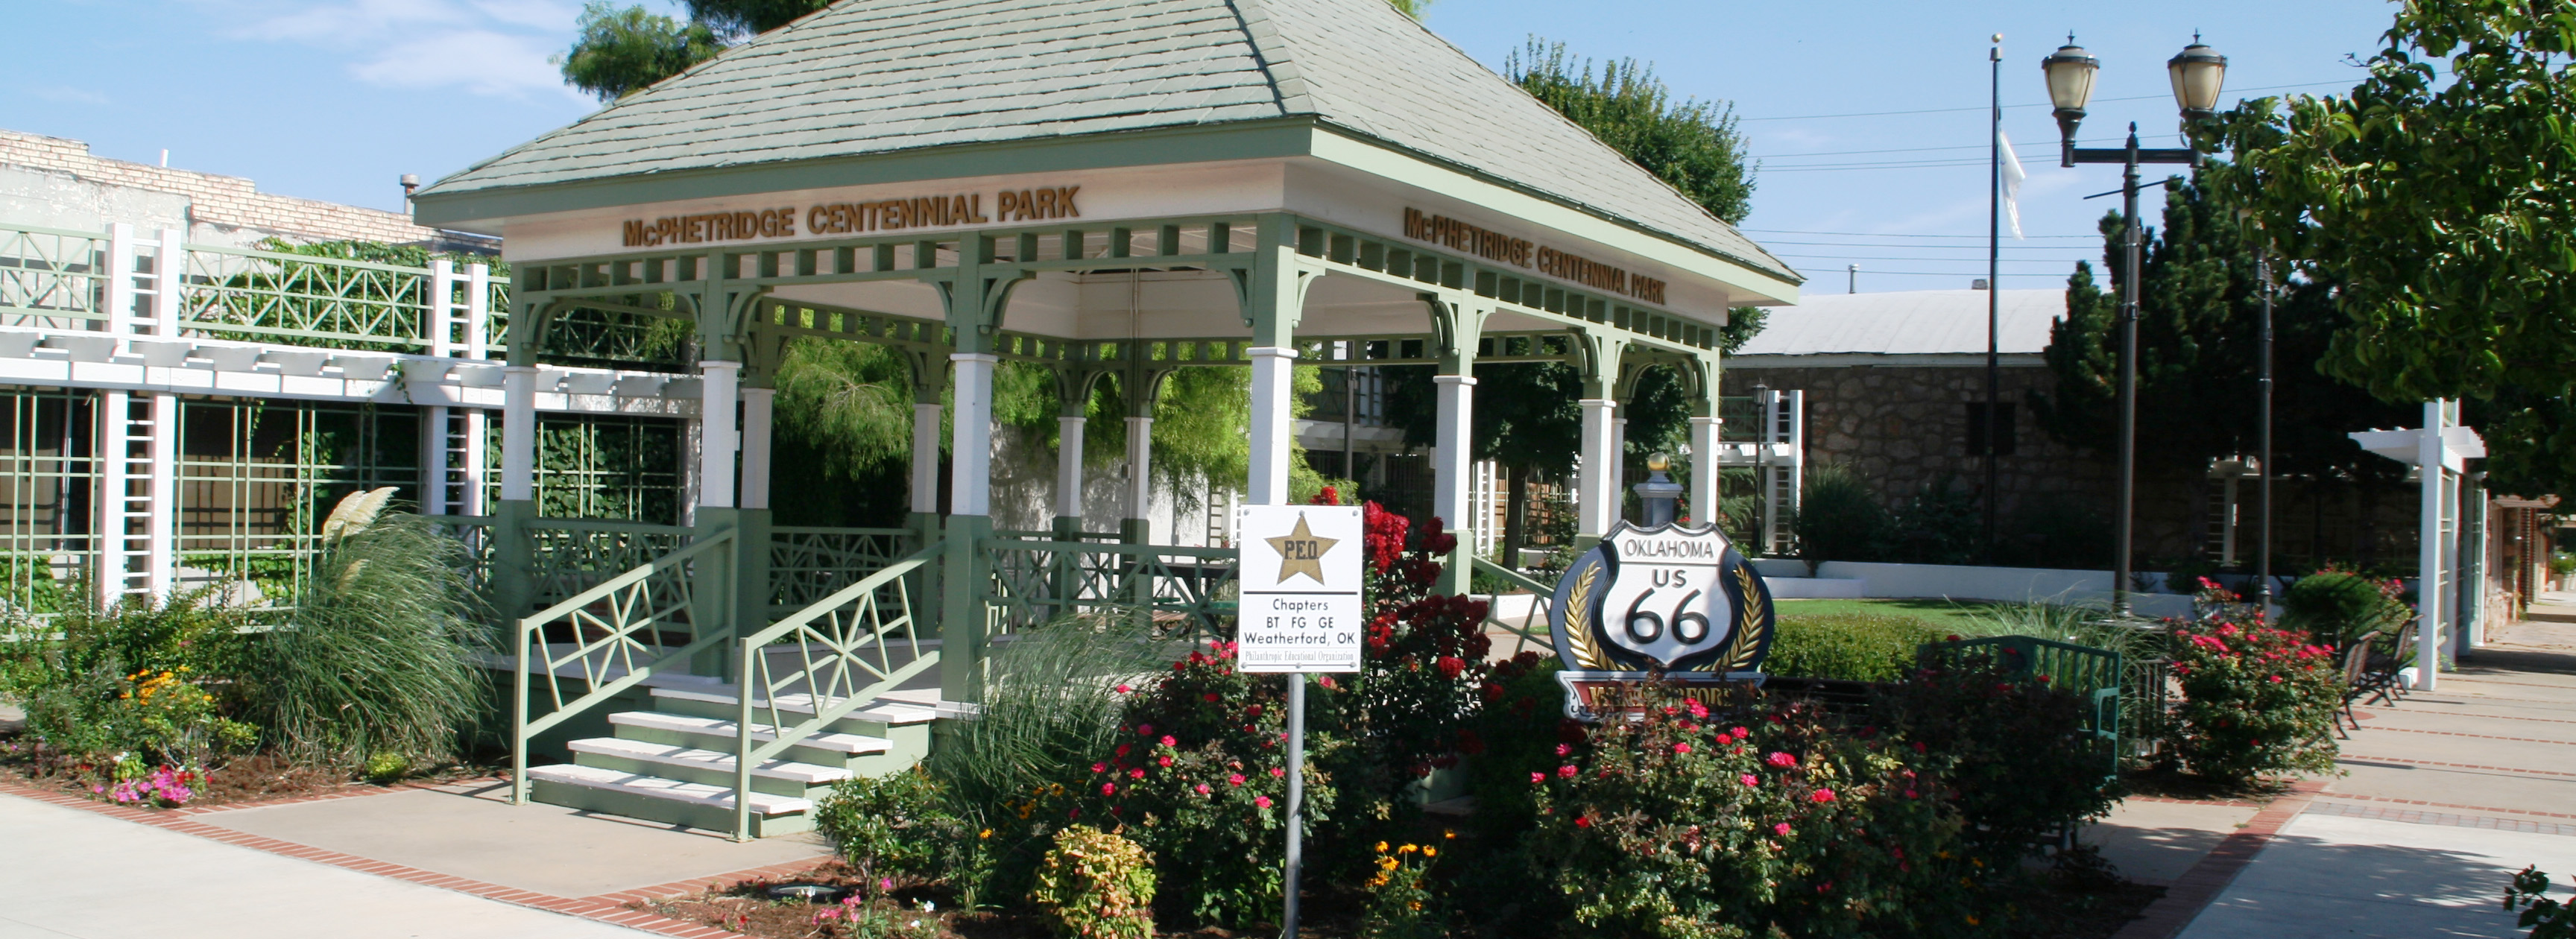 McPhetridge Centennial Park on Main Street in the Town Centre